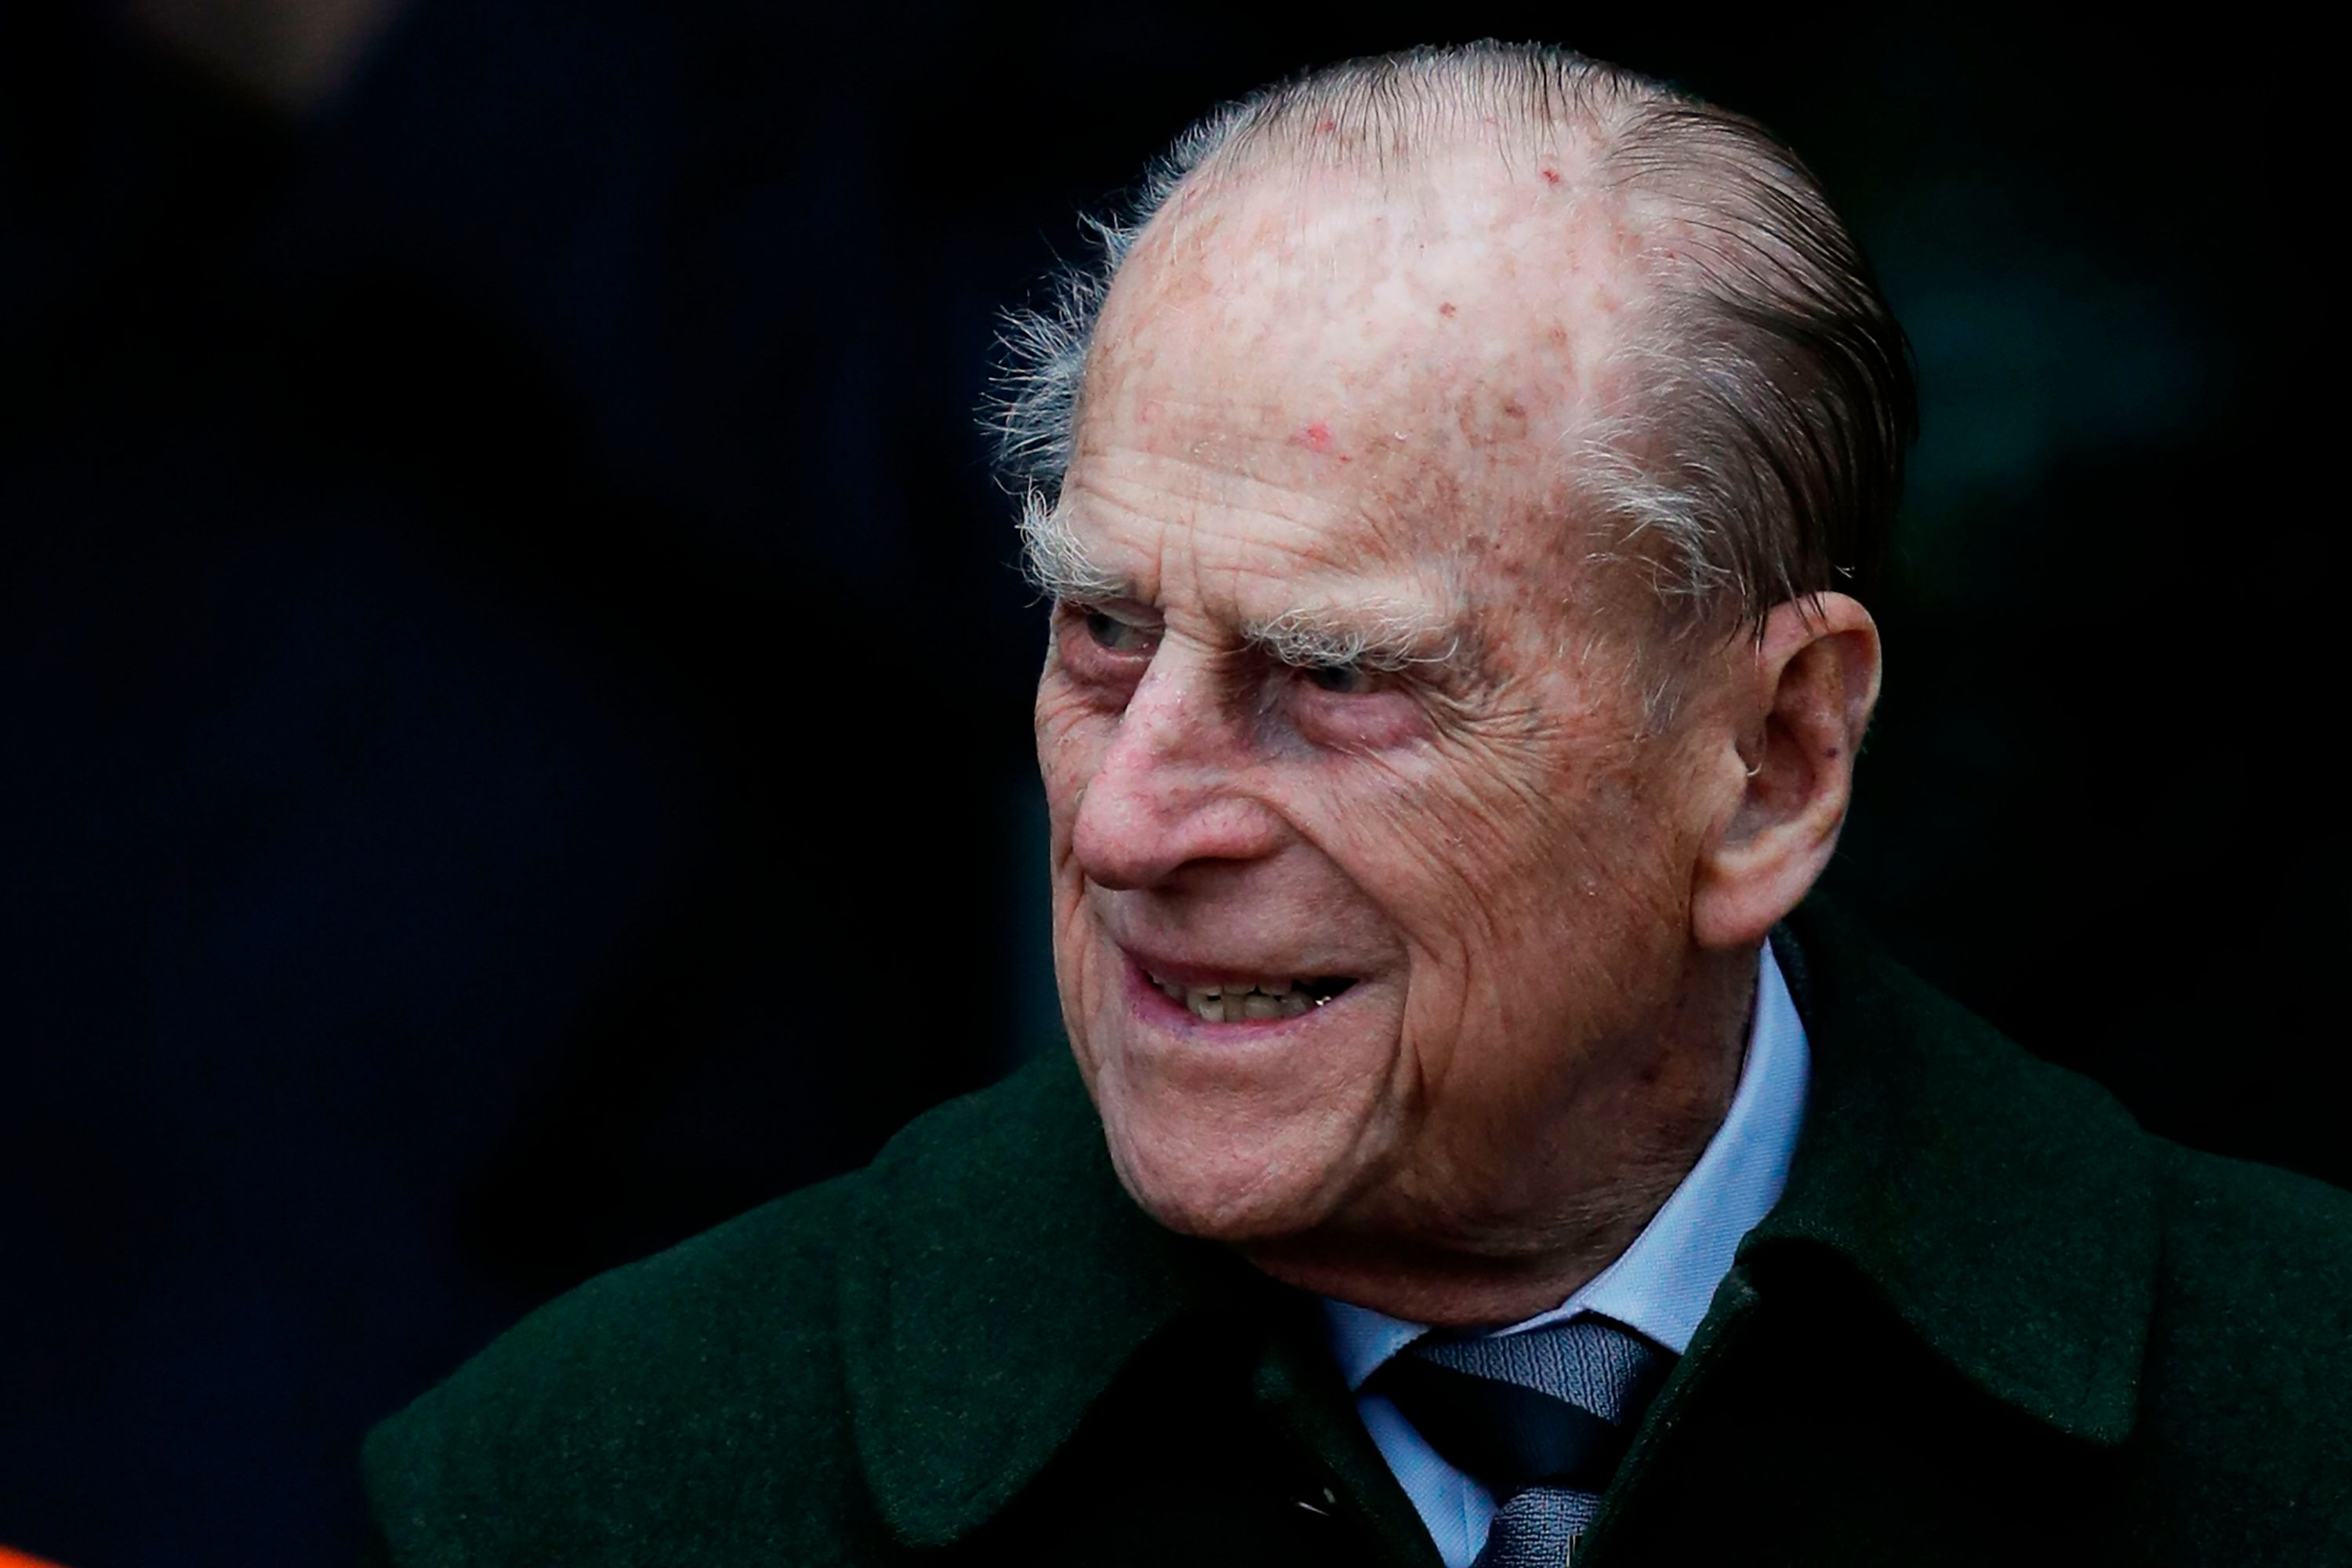 Prince Philip, 96, gets a new hip in successful replacement surgery